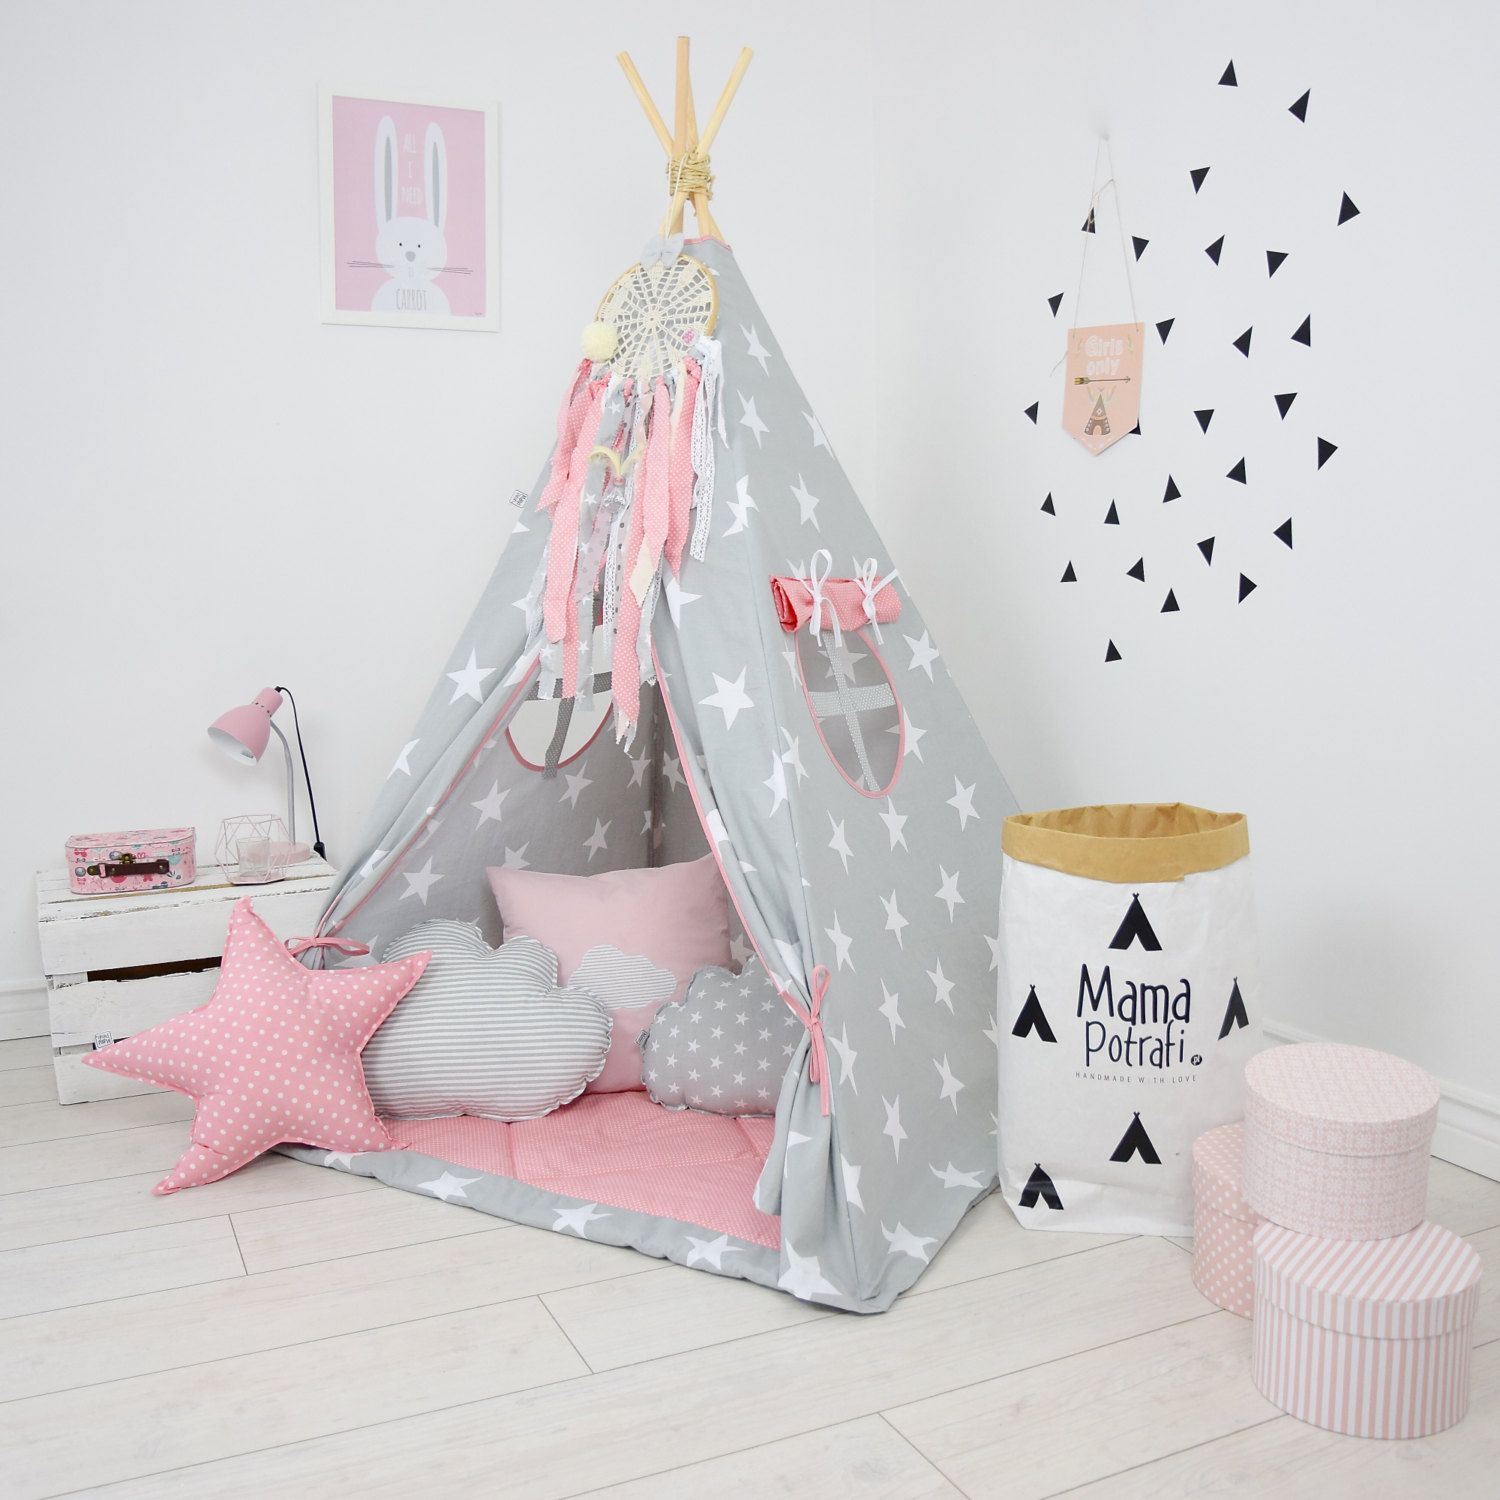 Teepee Set Kids Play Teepee Tent Tipi Kid Playhouse Wigwam Zelt Tente- In My Imagination  sc 1 st  Pinterest & Teepee Set Kids Play Teepee Tent Tipi Kid Playhouse Wigwam Zelt ...